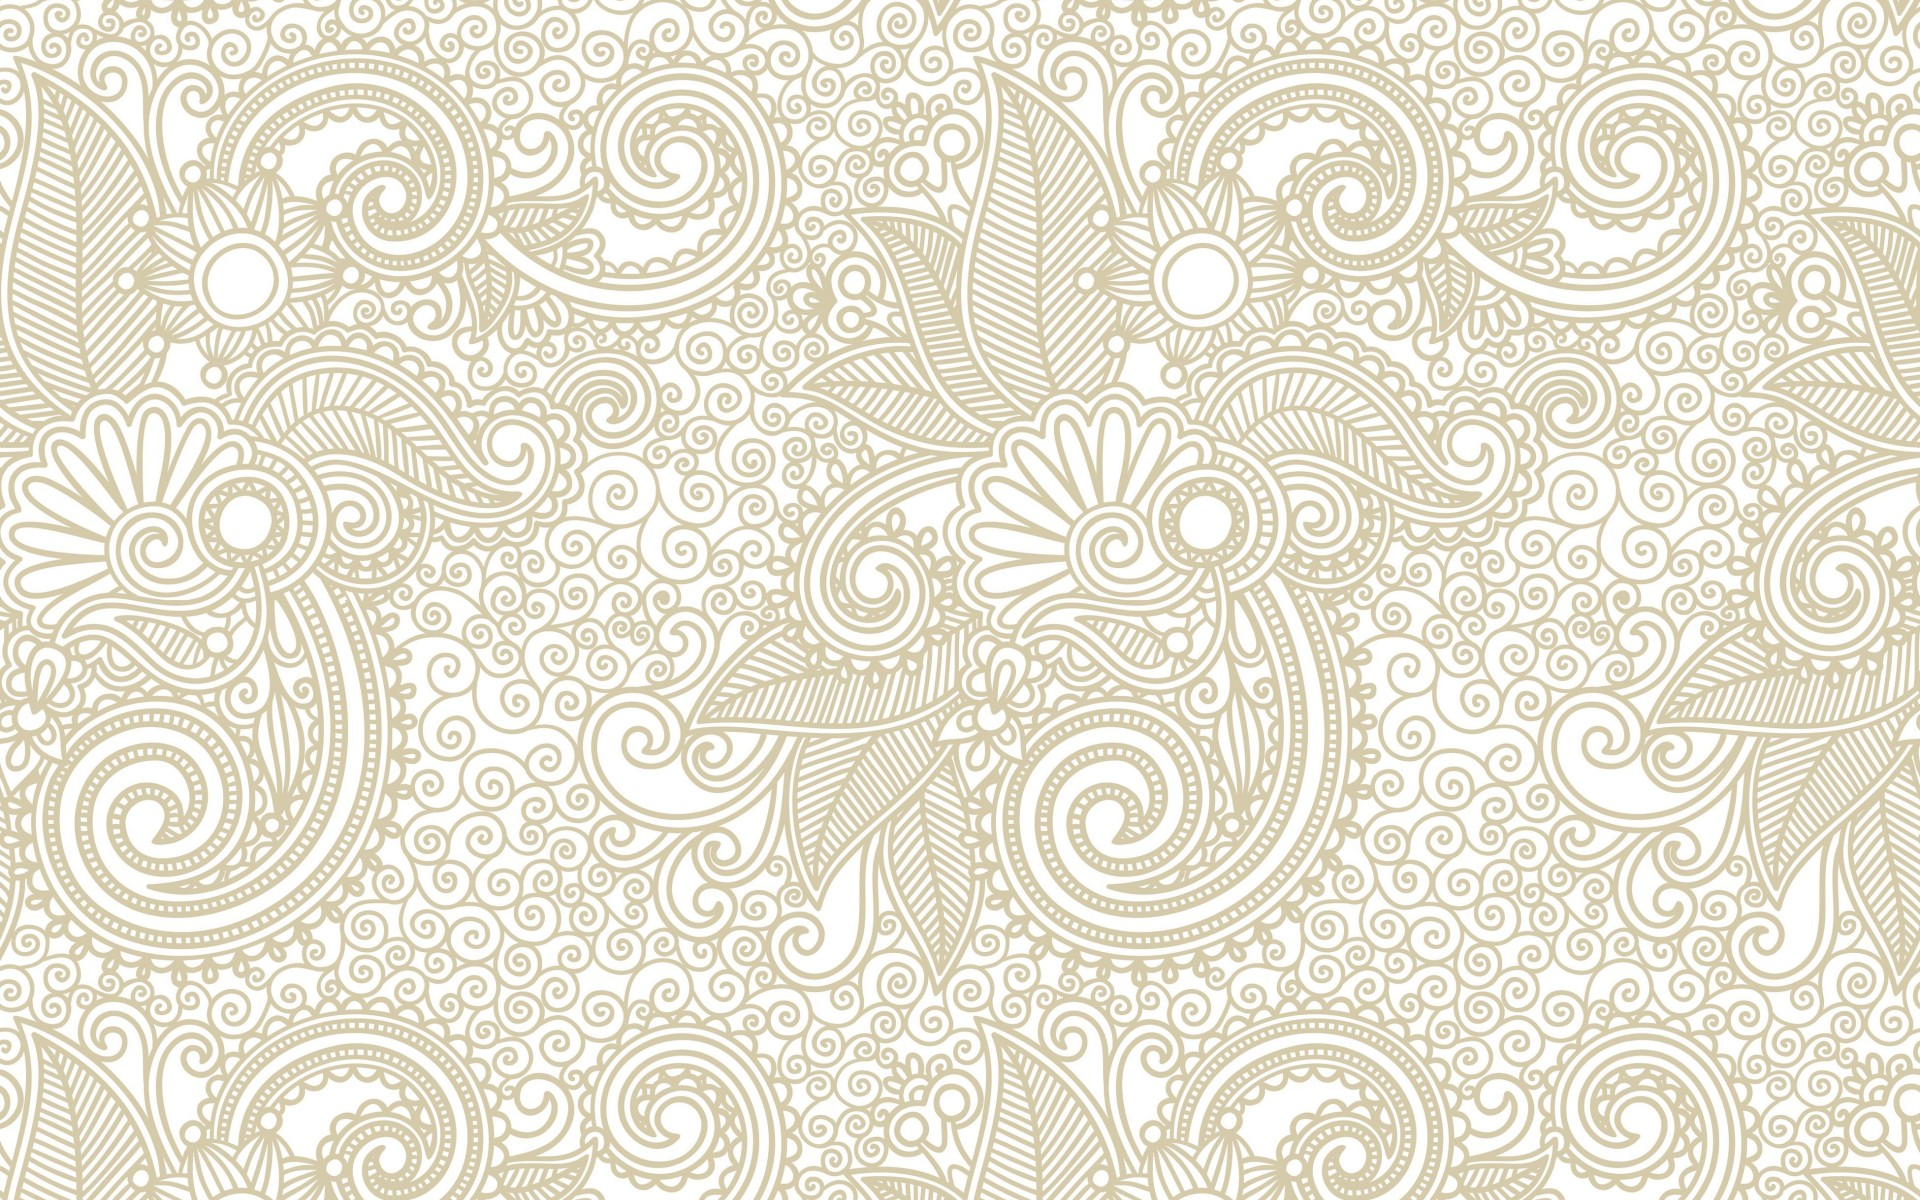 Pattern Background HD Desktop Wallpaper 16487 - Baltana